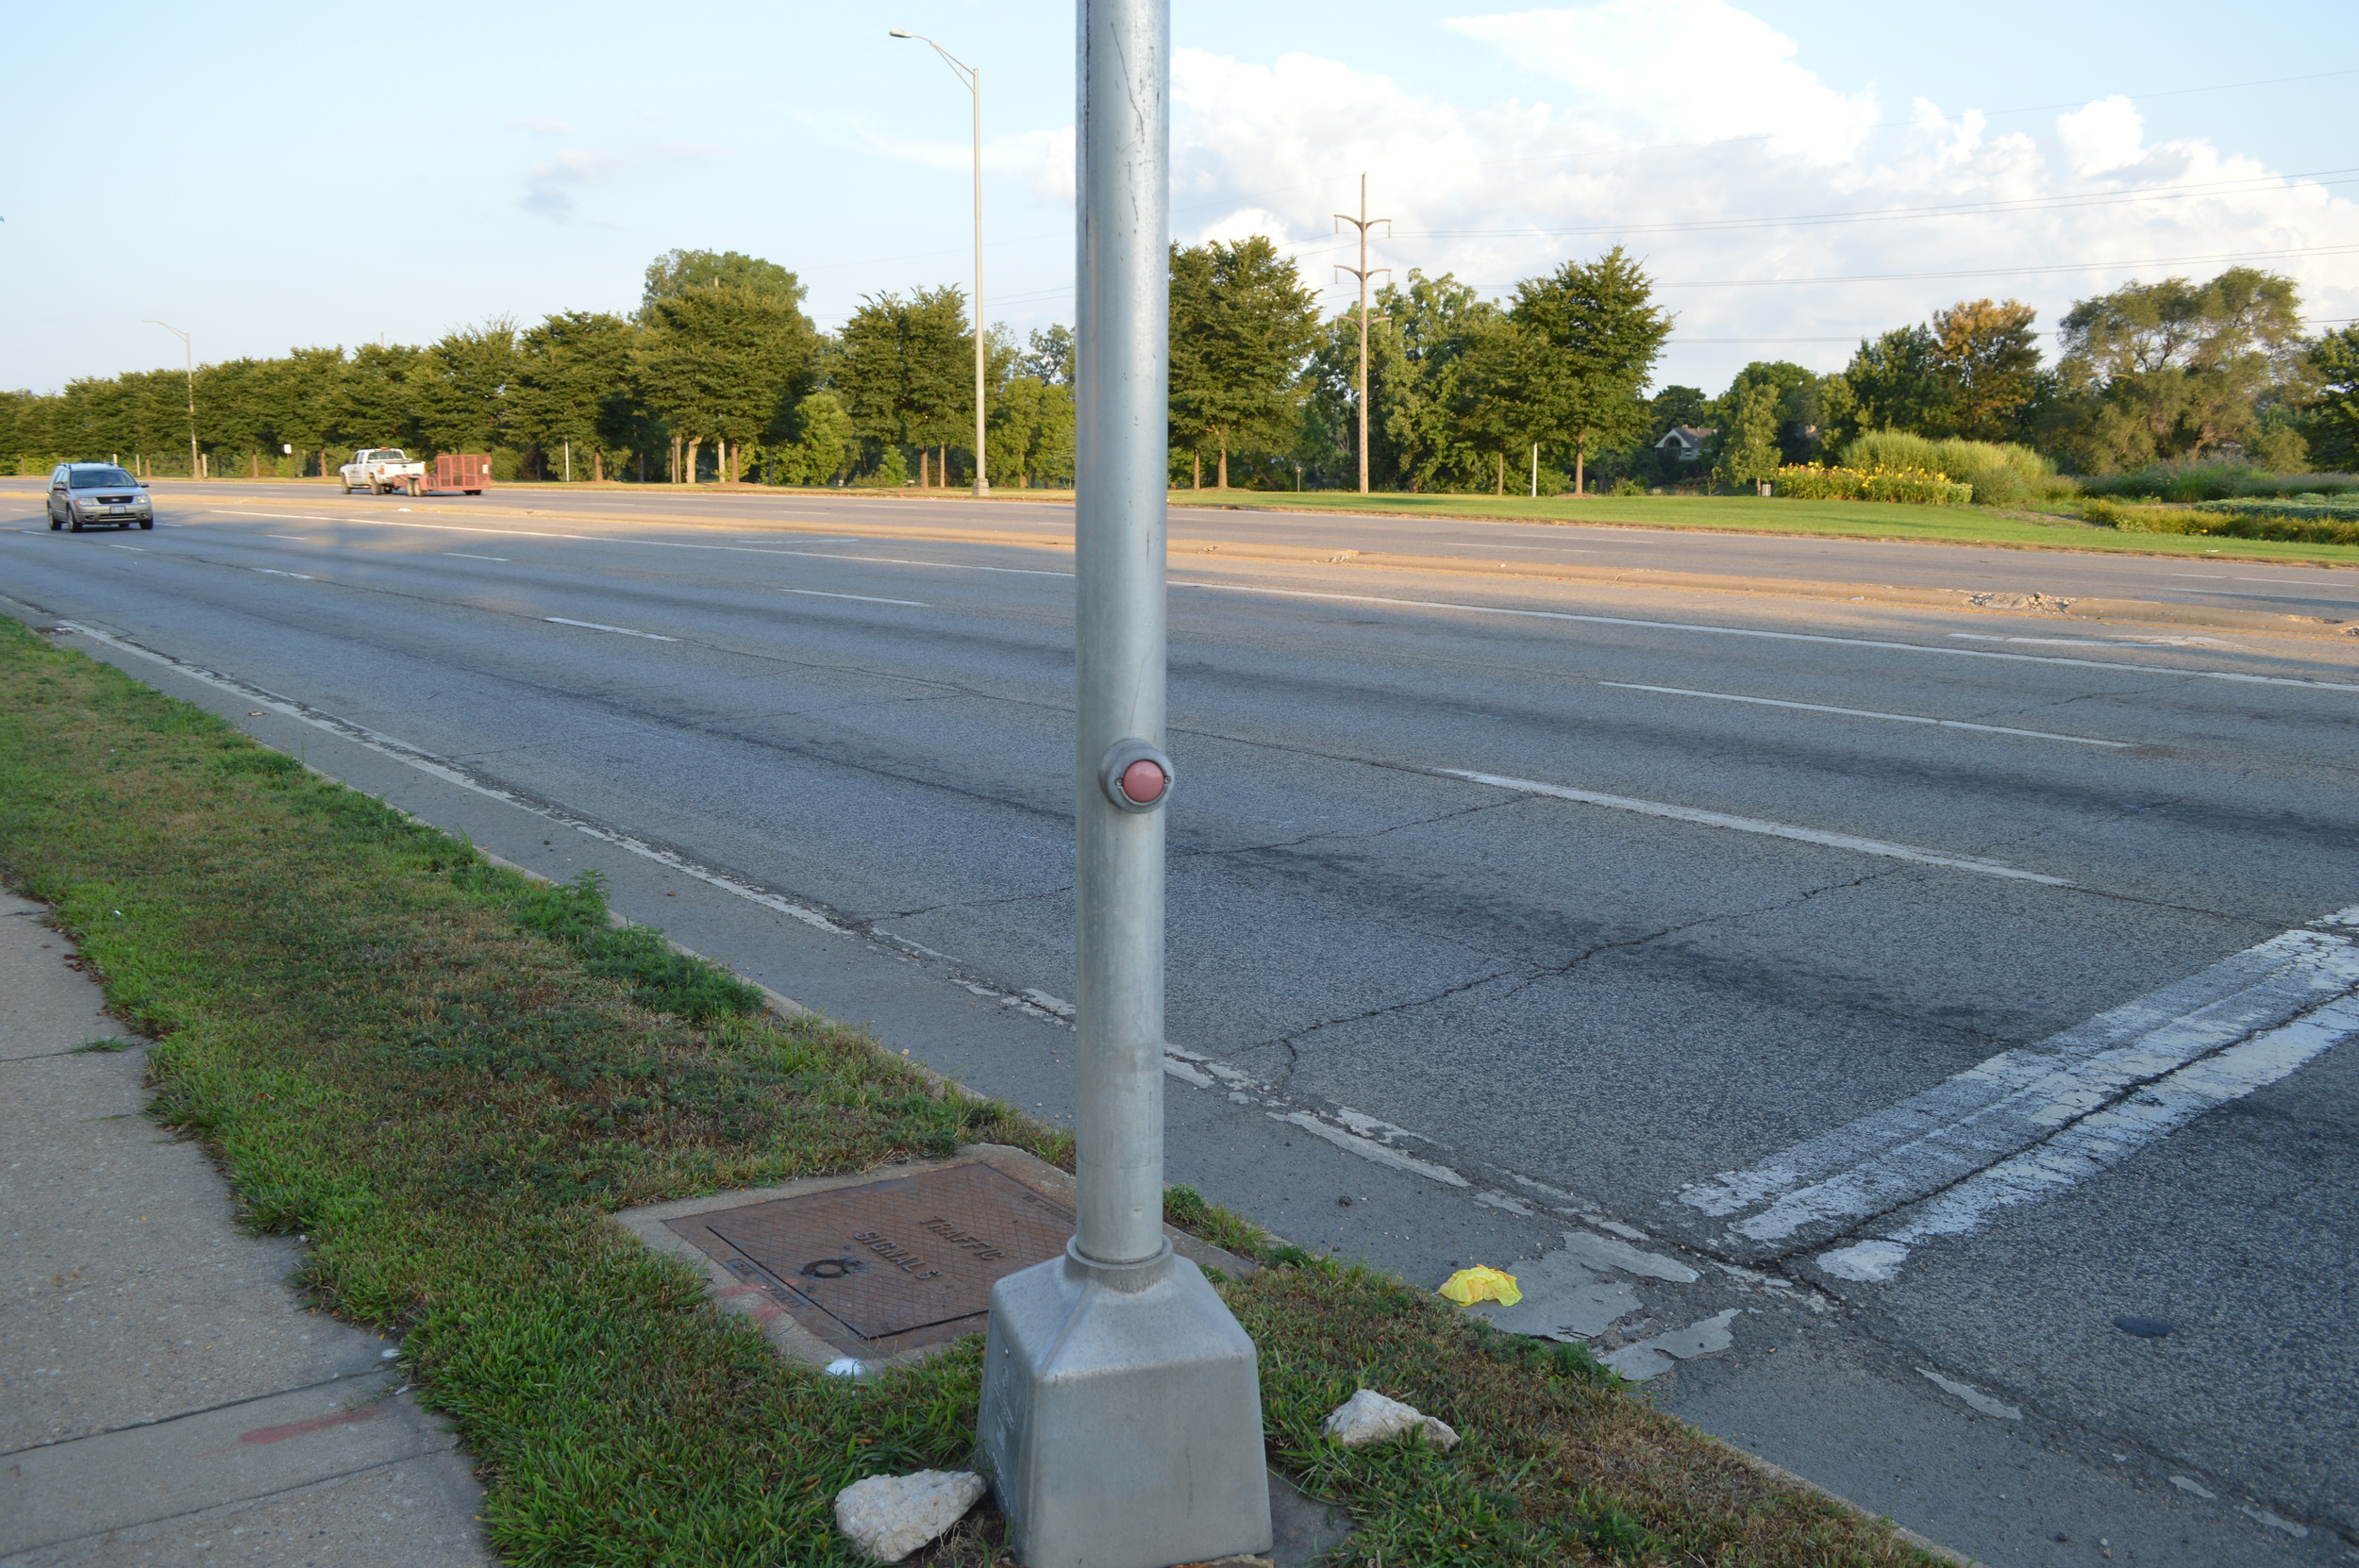 Southeast corner of Ethel Ave. and 251 intersection, an unassuming crosswalk button capable of stopping 6 lanes of commuter traffic.